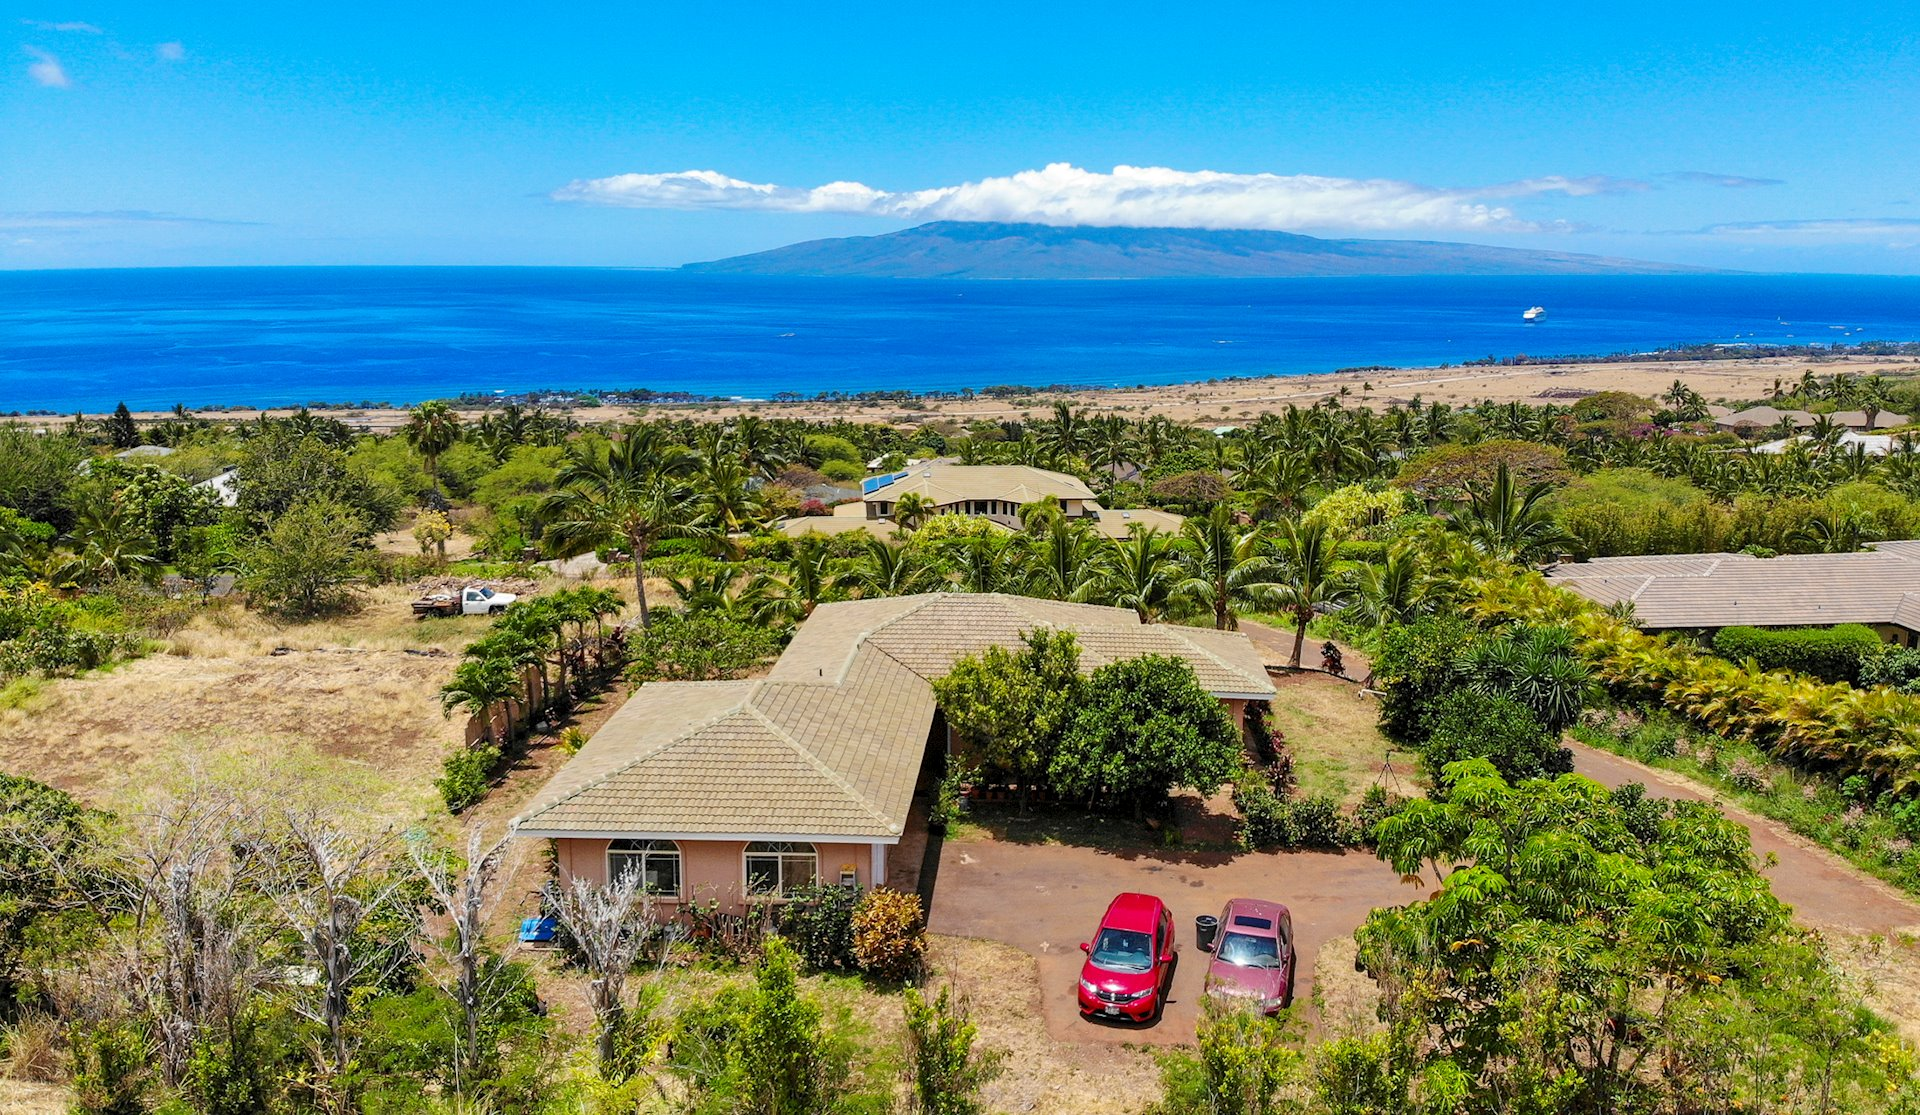 Huge Price Improvement!  This is the best DEAL in Launiupoko. Imagine the possibilities and make this incredible property your own!  Perched on the top row of Launiupoko, sits the best-priced home in one of Maui's most desirable neighborhoods.  This quaint, two-bedroom CPRed cottage has panoramic ocean views and is perfectly situated on a one-acre lot. The possibilities to make this home the ultimate Maui property are endless.  There is plenty of room to add a wrap-around lanai, pool and bountiful garden, truly taking advantage of the never-ending ocean views.  Launiupoko is the perfect spot - with its proximity to the beach, walking trails, and the night life, restaurants and shopping of Lahaina just minutes away.  This is an incredible opportunity to own in this magnificent neighborhood at a discount price.